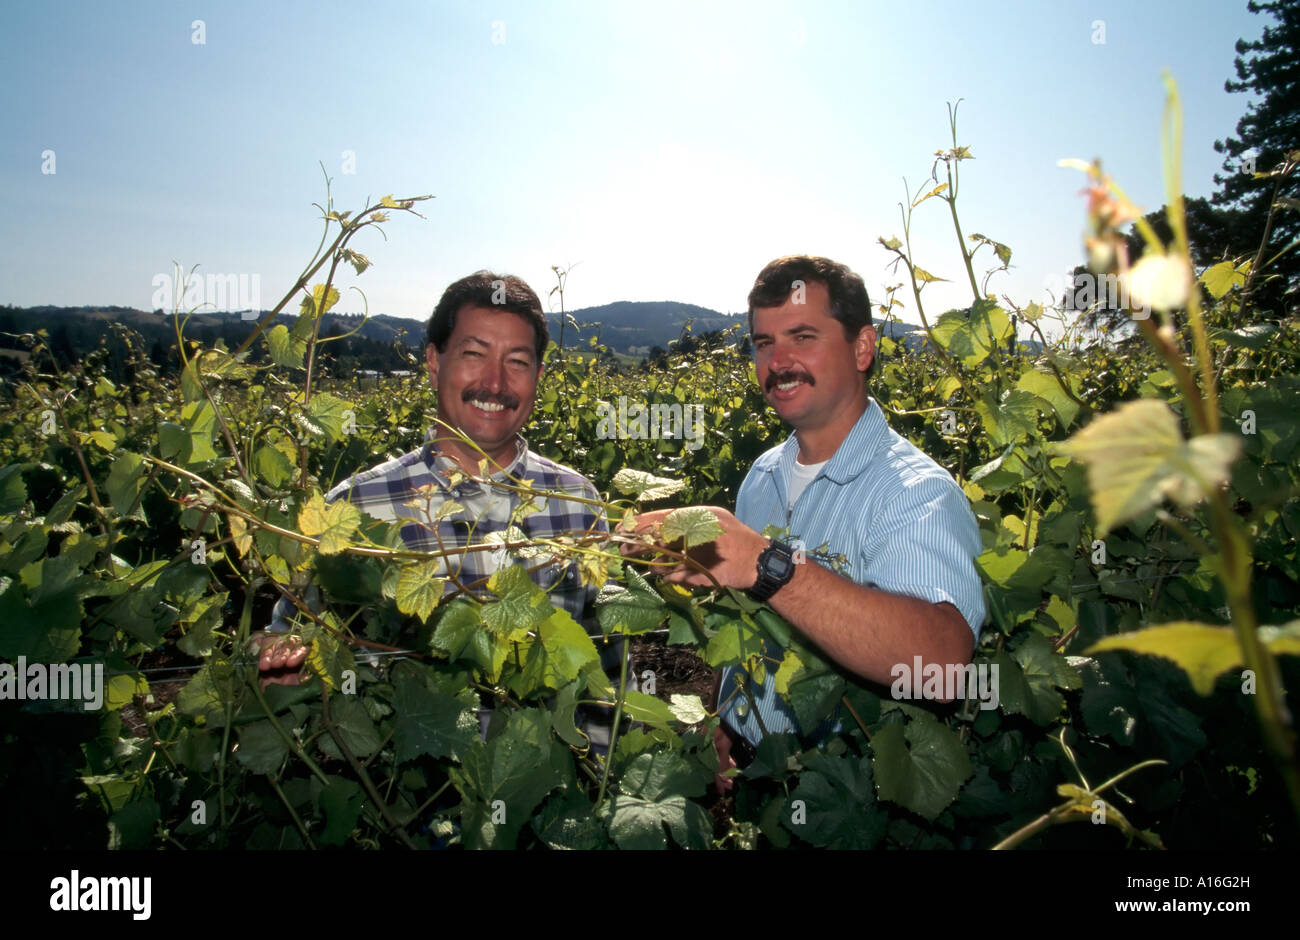 workers in vineyard Anderson Valley CA USA - Stock Image